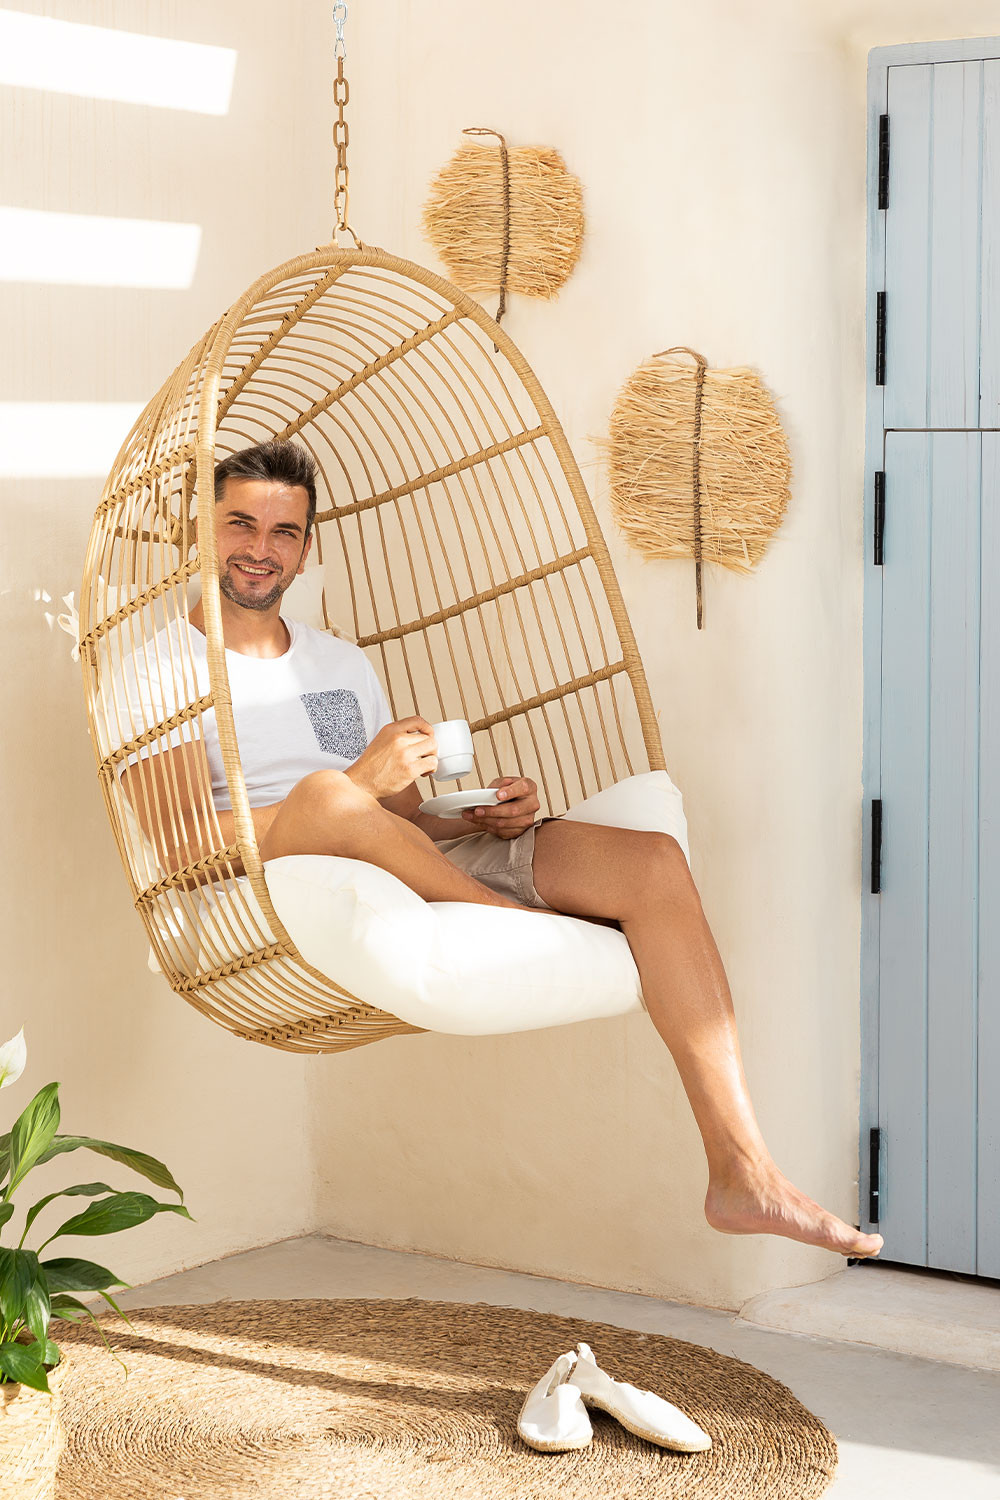 Synthetic Rattan Hanging Hammock Zosky, gallery image 1